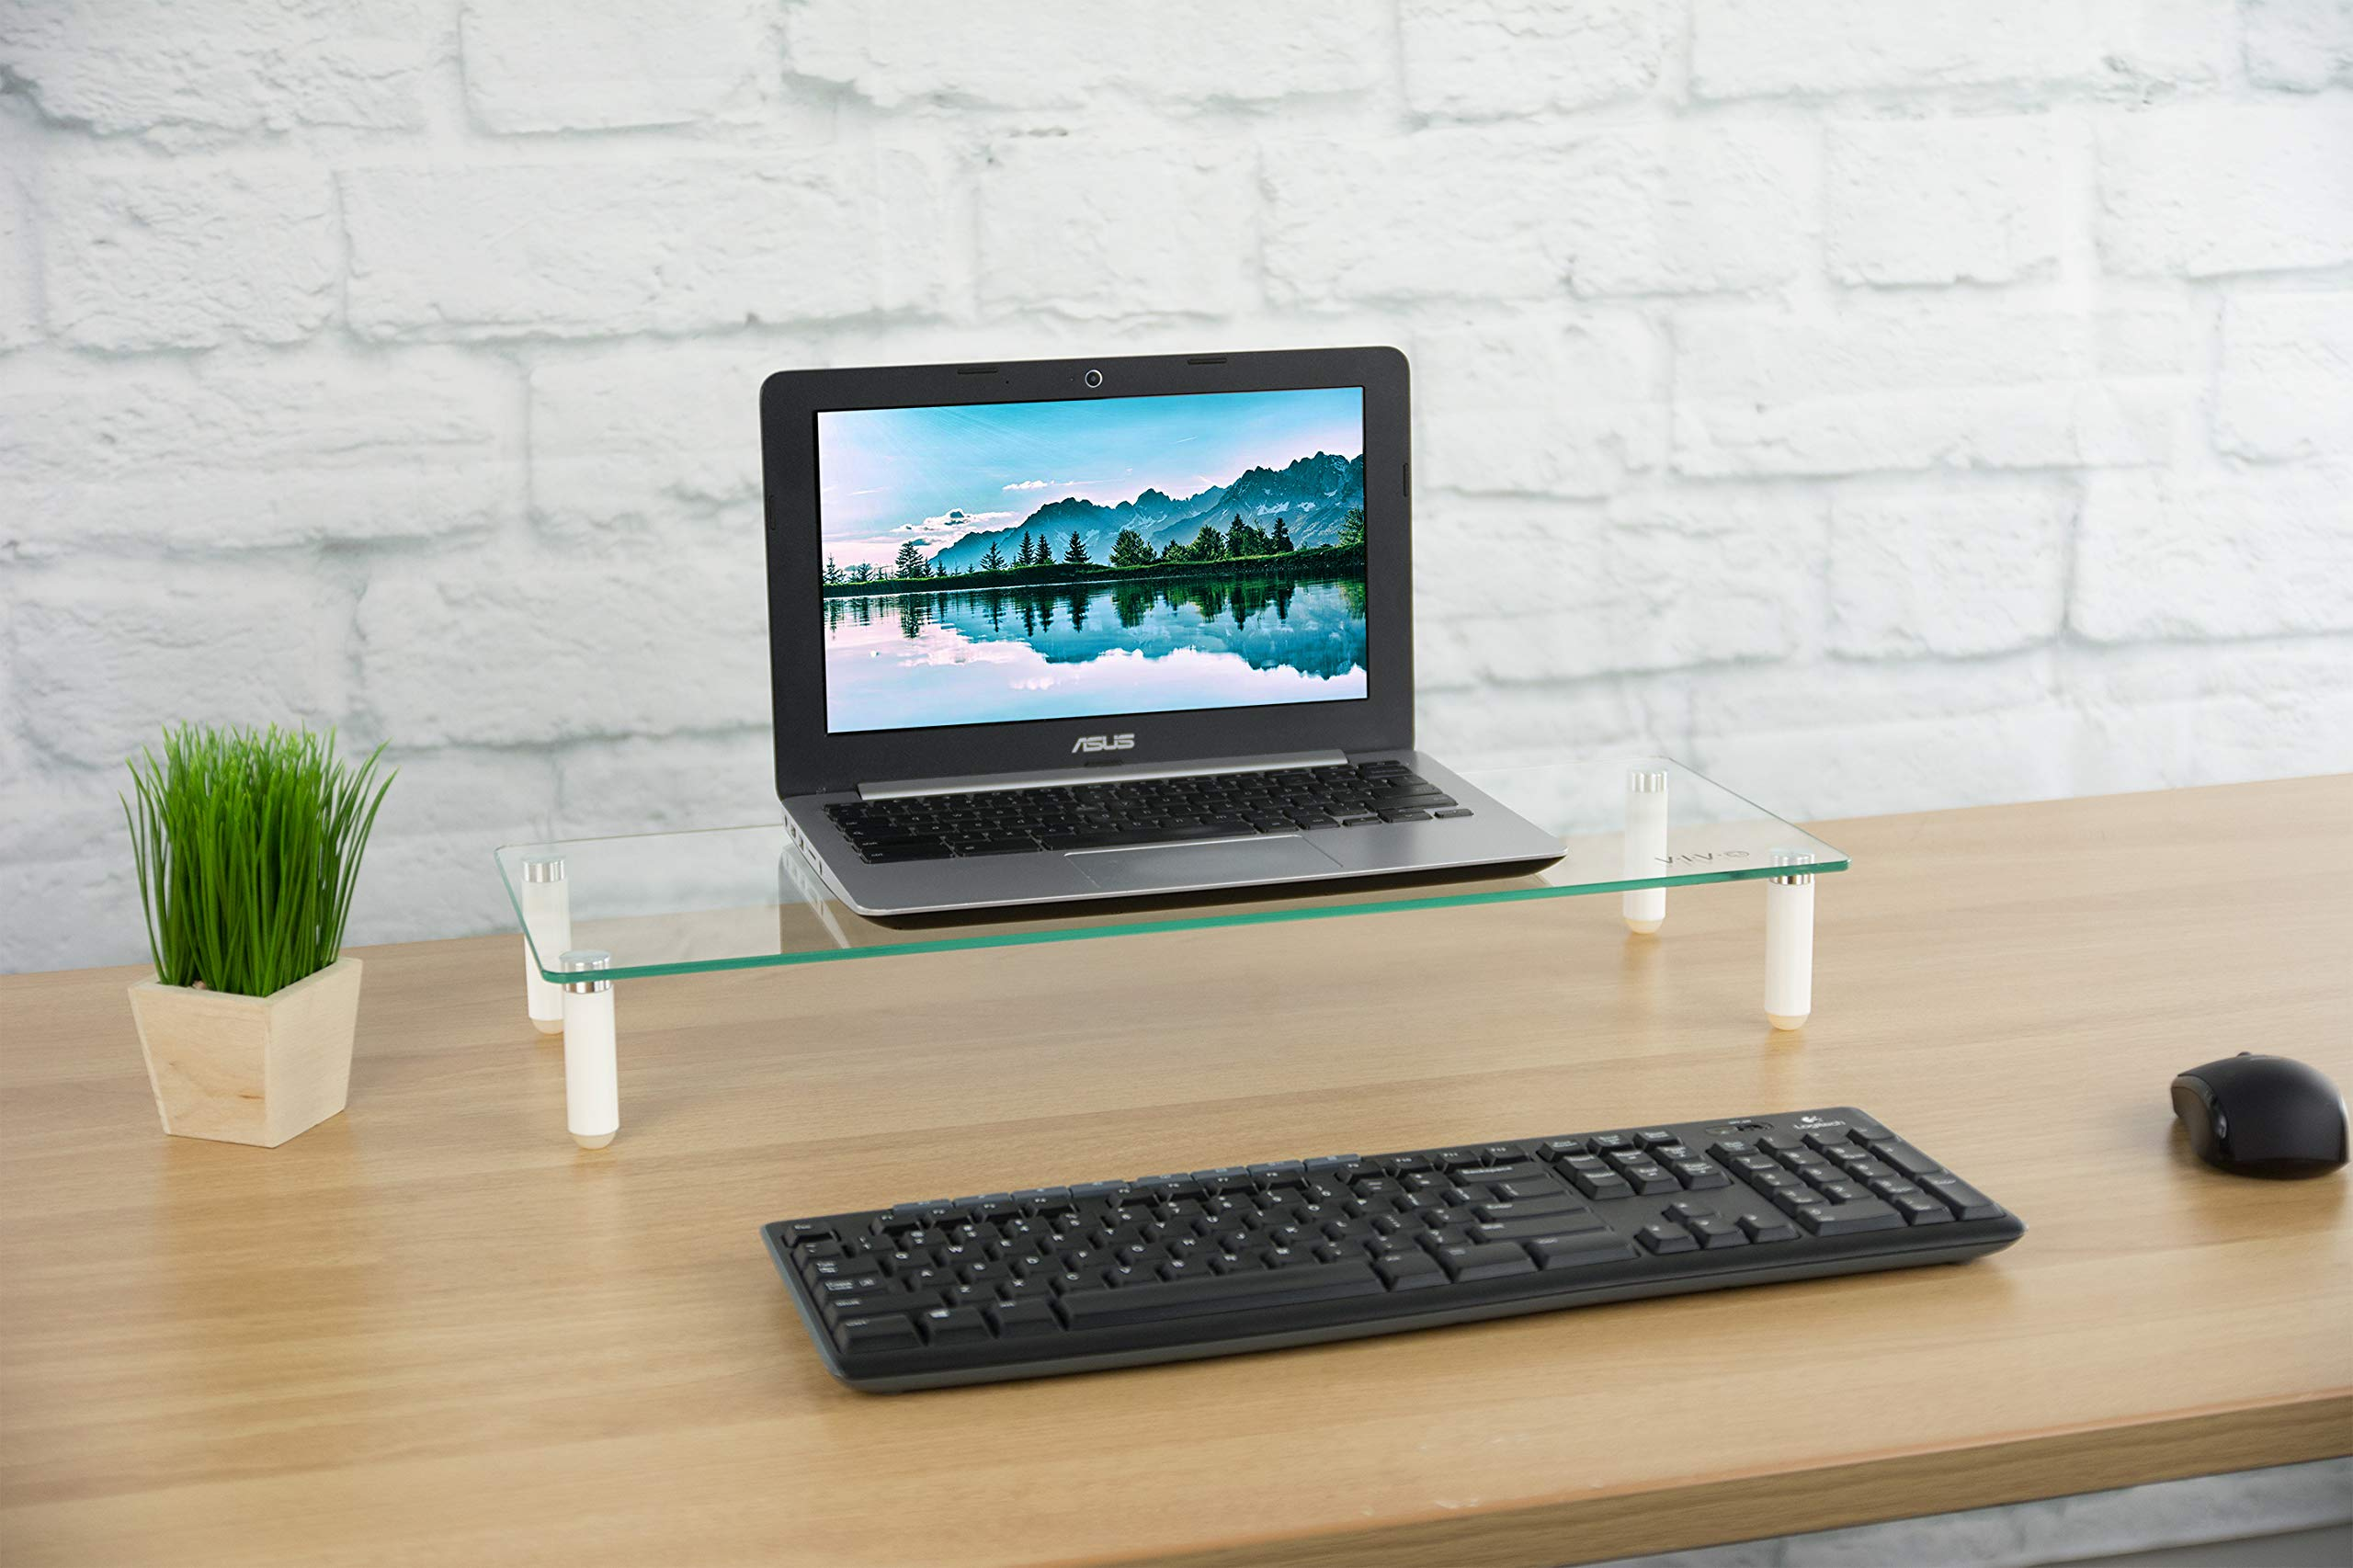 VIVO Glass Ergonomic Tabletop Riser/Desktop Stand for Computer Monitor, LCD LED TV, Monitor, Laptop/Notebook, and more (STAND-V000R) by VIVO (Image #5)